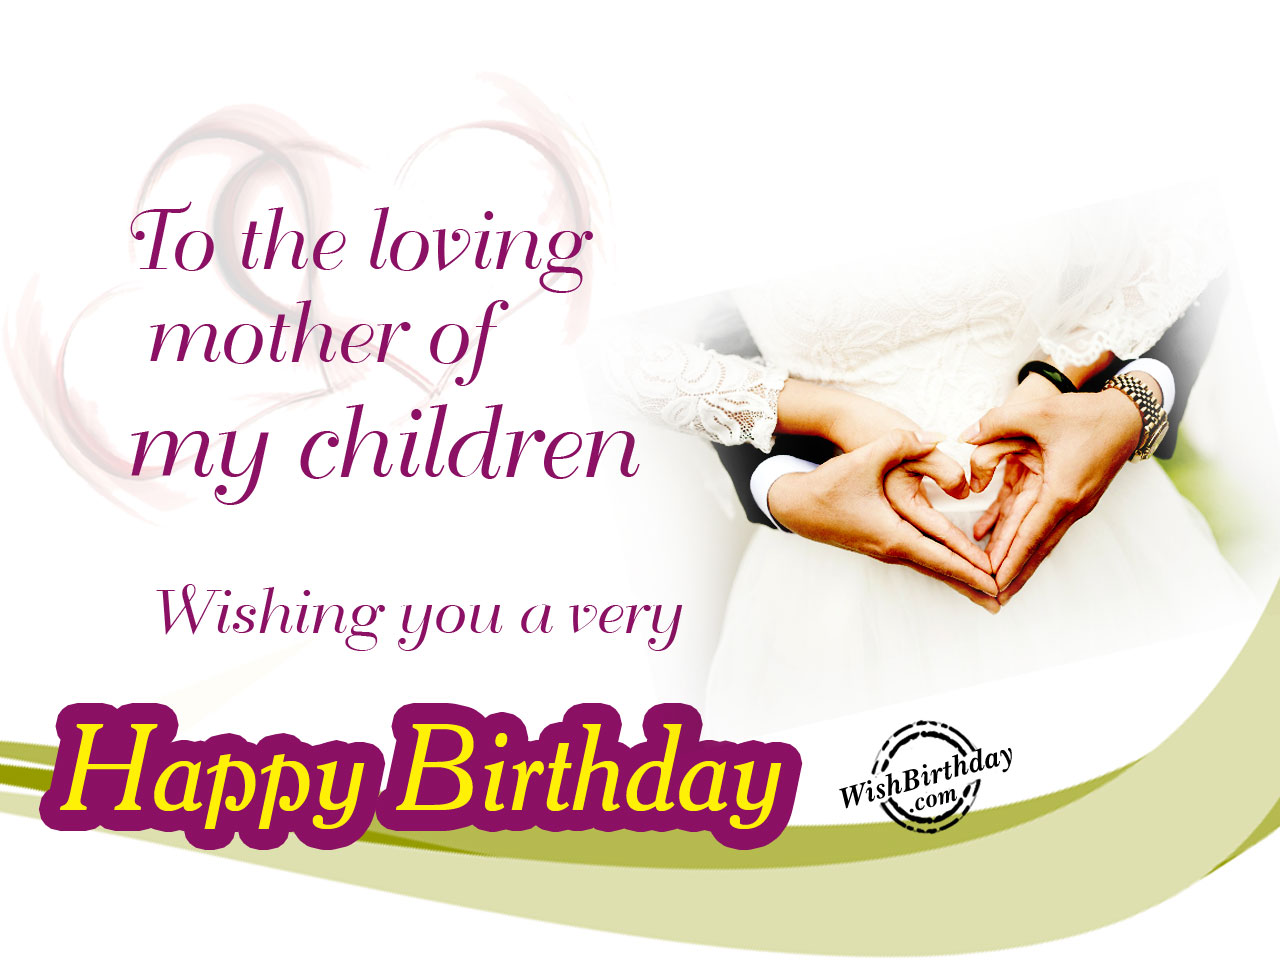 To The Loving Mother Of My Children Happy Birthday Happy Birthday Wishes Mail To